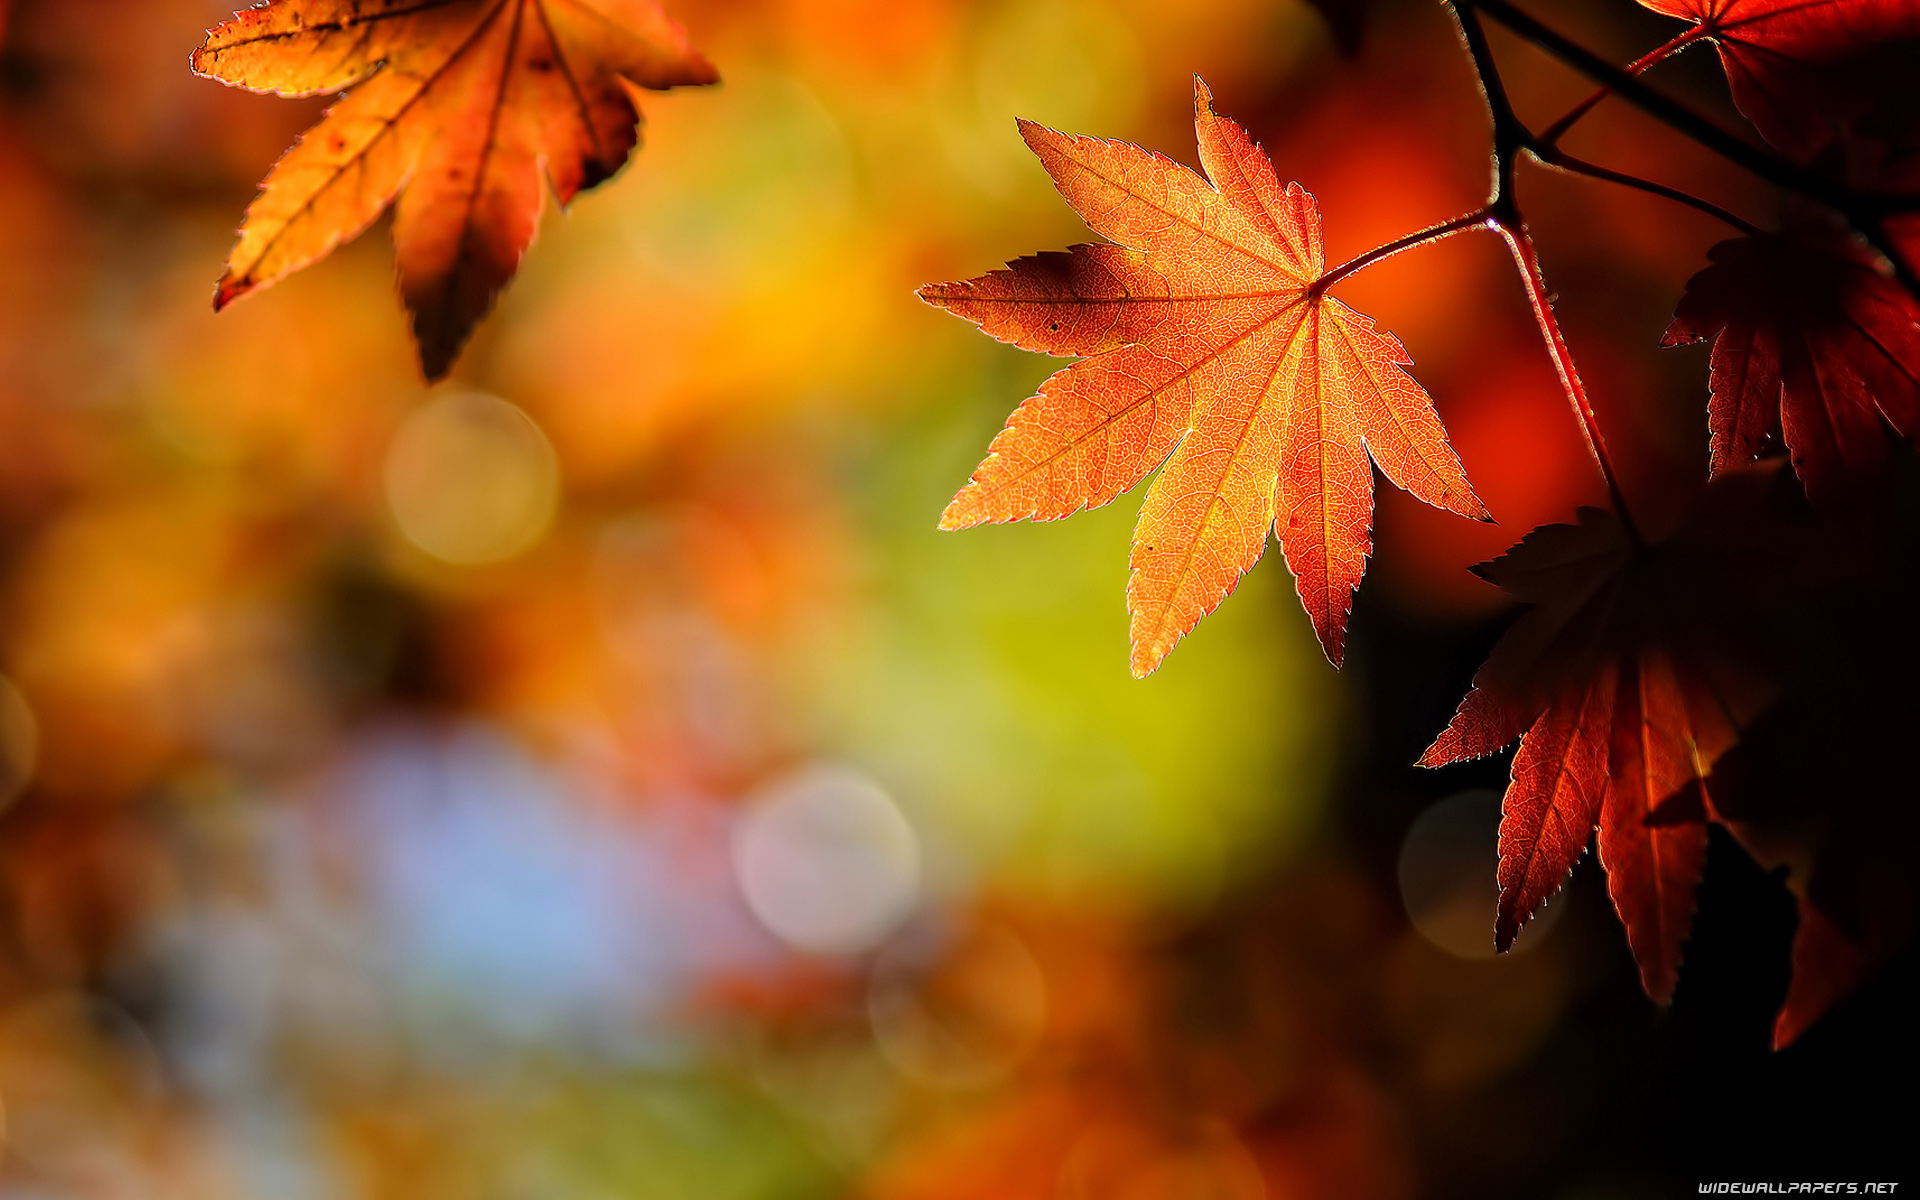 Autumn Leaves Wallpaper - Autumn Leaves Wallpaper